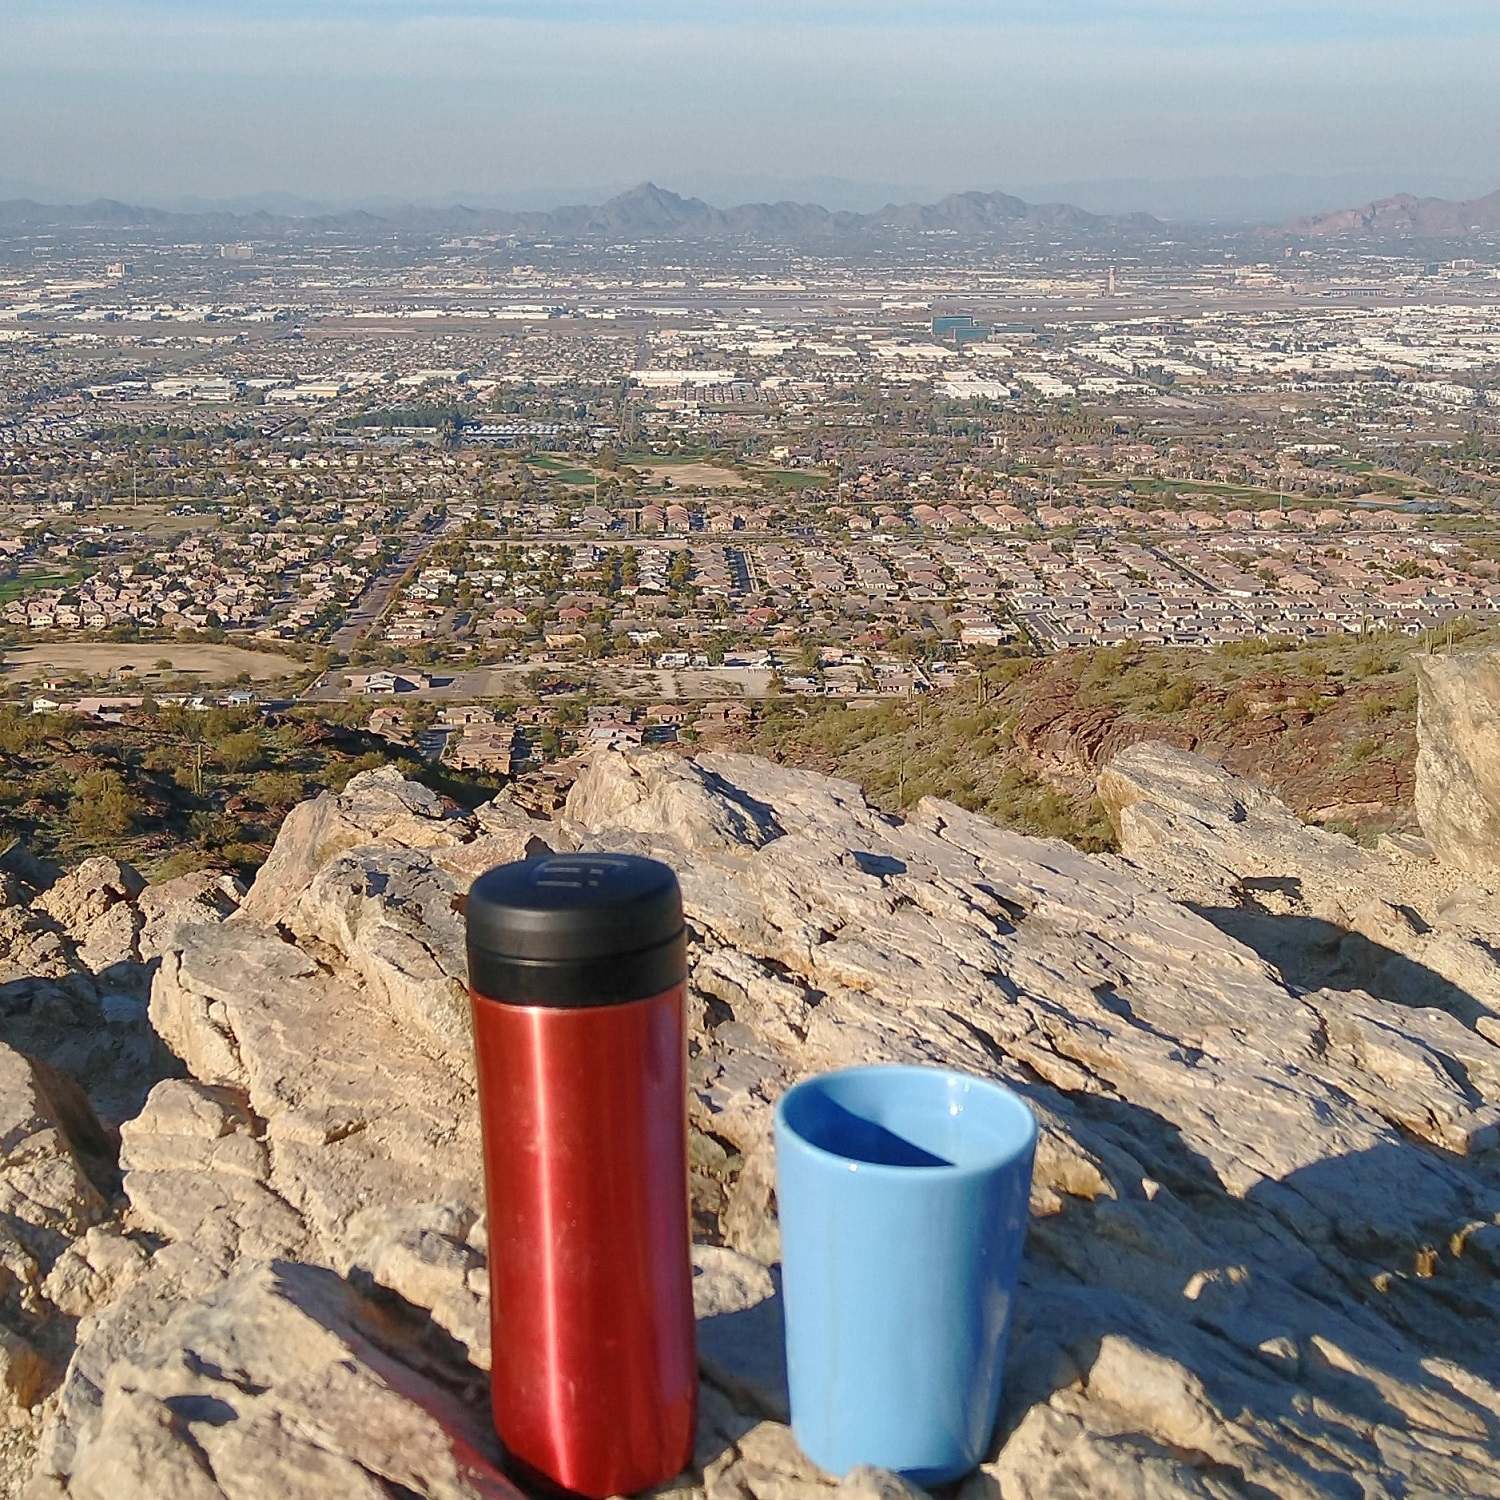 My Travel Press and Therma Cup overlook Phoenix from the Ridge Line Trail along South Mountain.